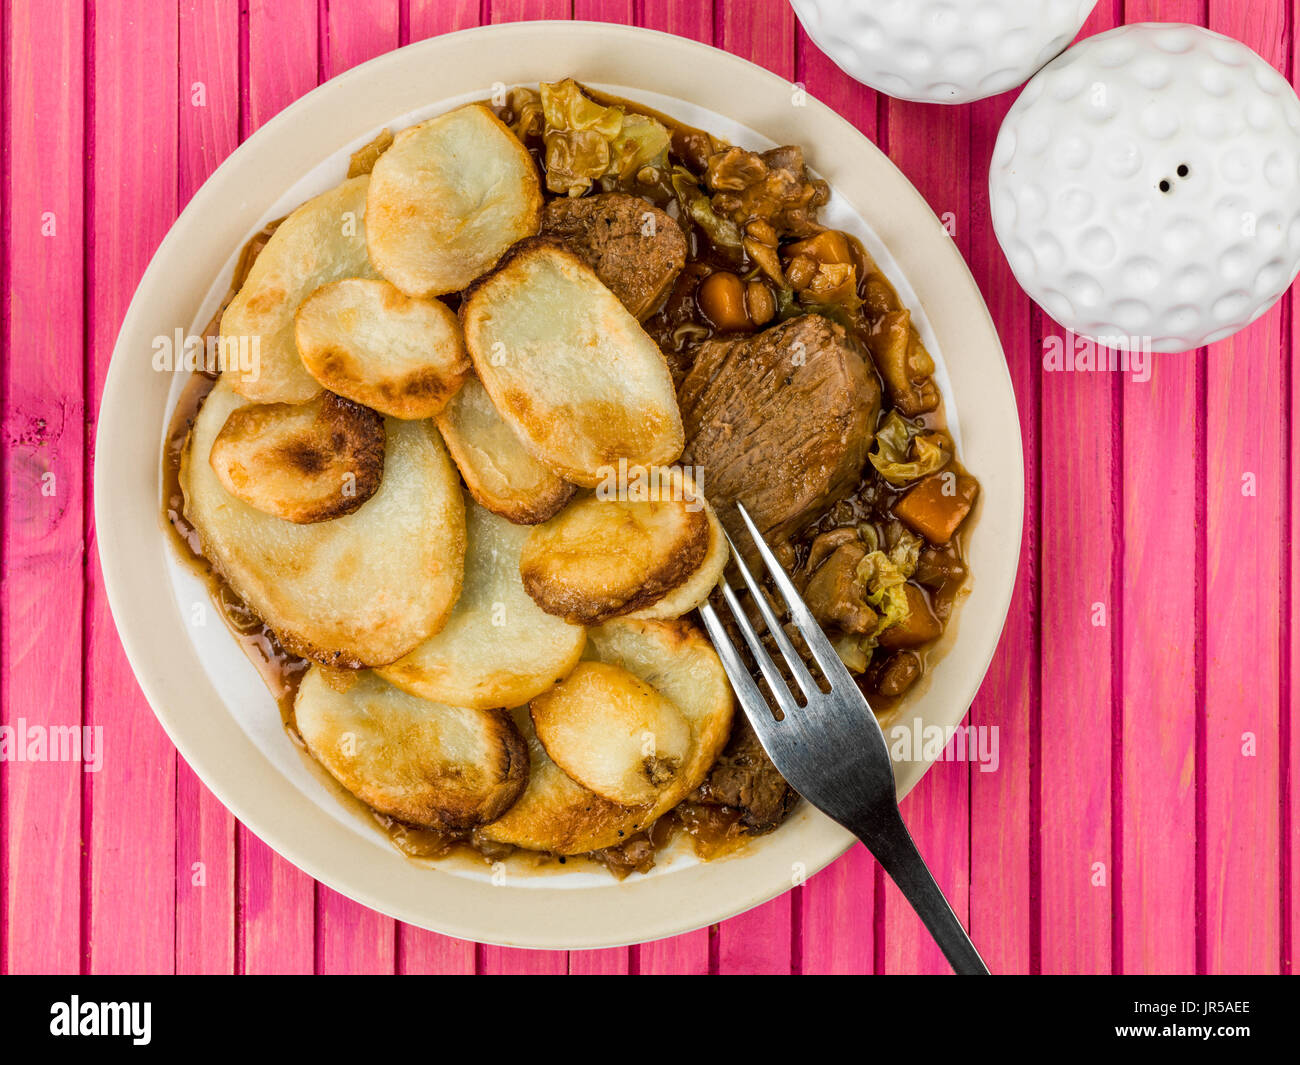 Lamb Hotpot With Sliced Potatoes and Onion Gravy Against a Pink Wooden Background - Stock Image